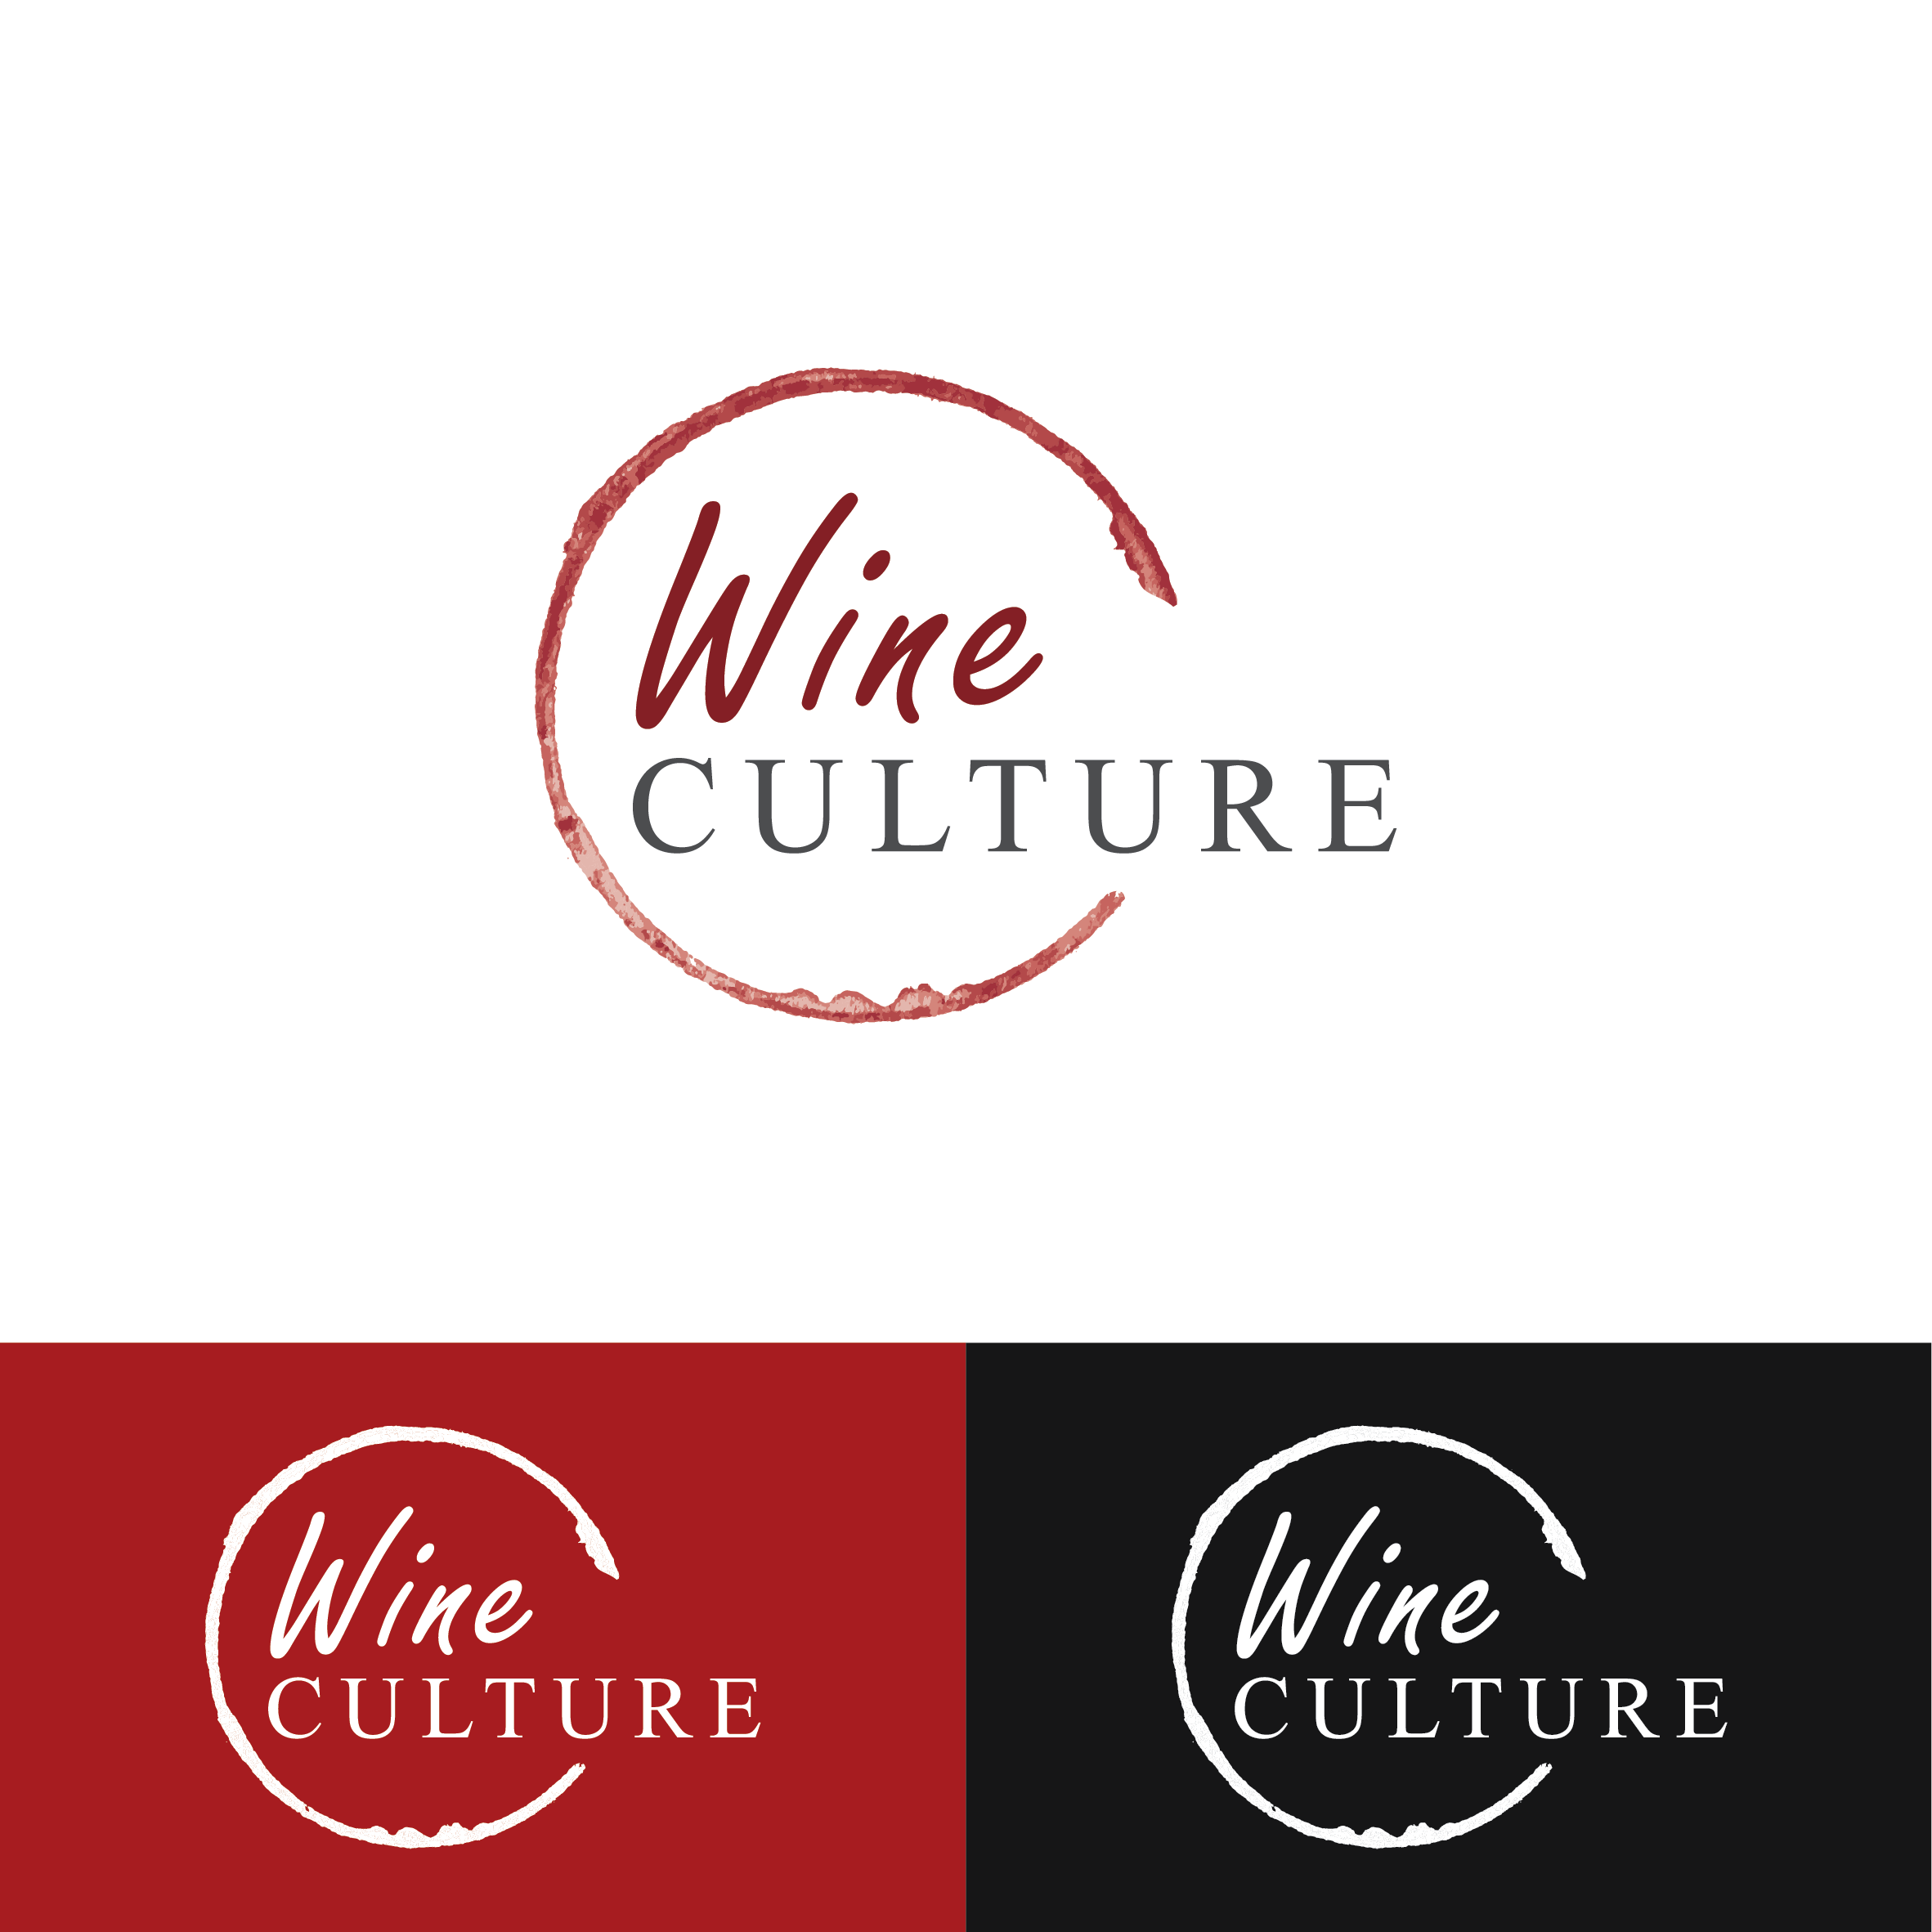 Design that is warm, inviting and appealing to men and women, promoting confidence in wines.